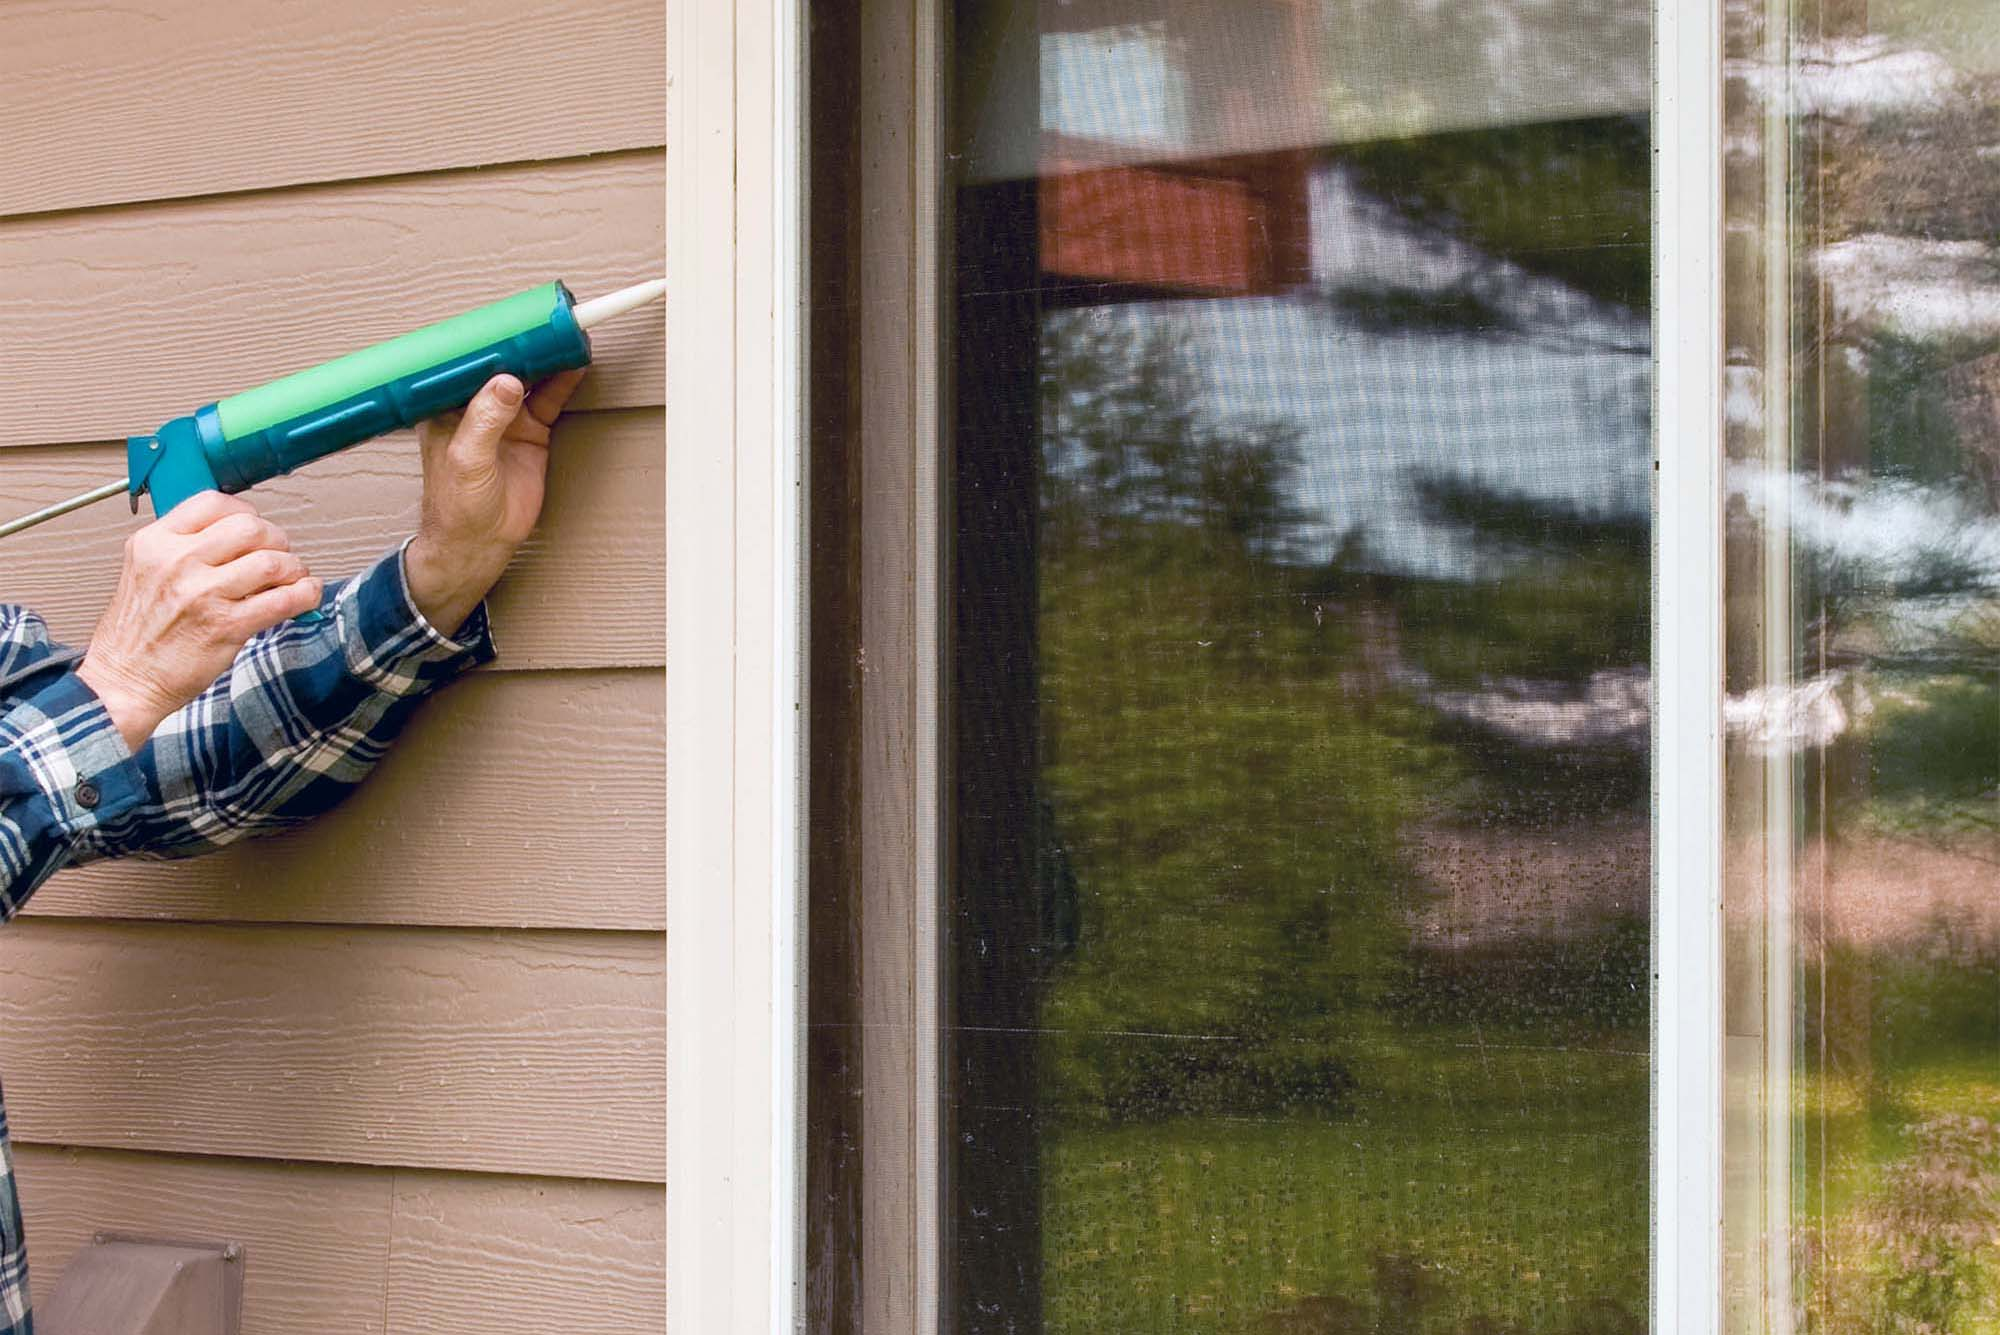 how to maintain fiber cement siding caulking Hardie siding windows